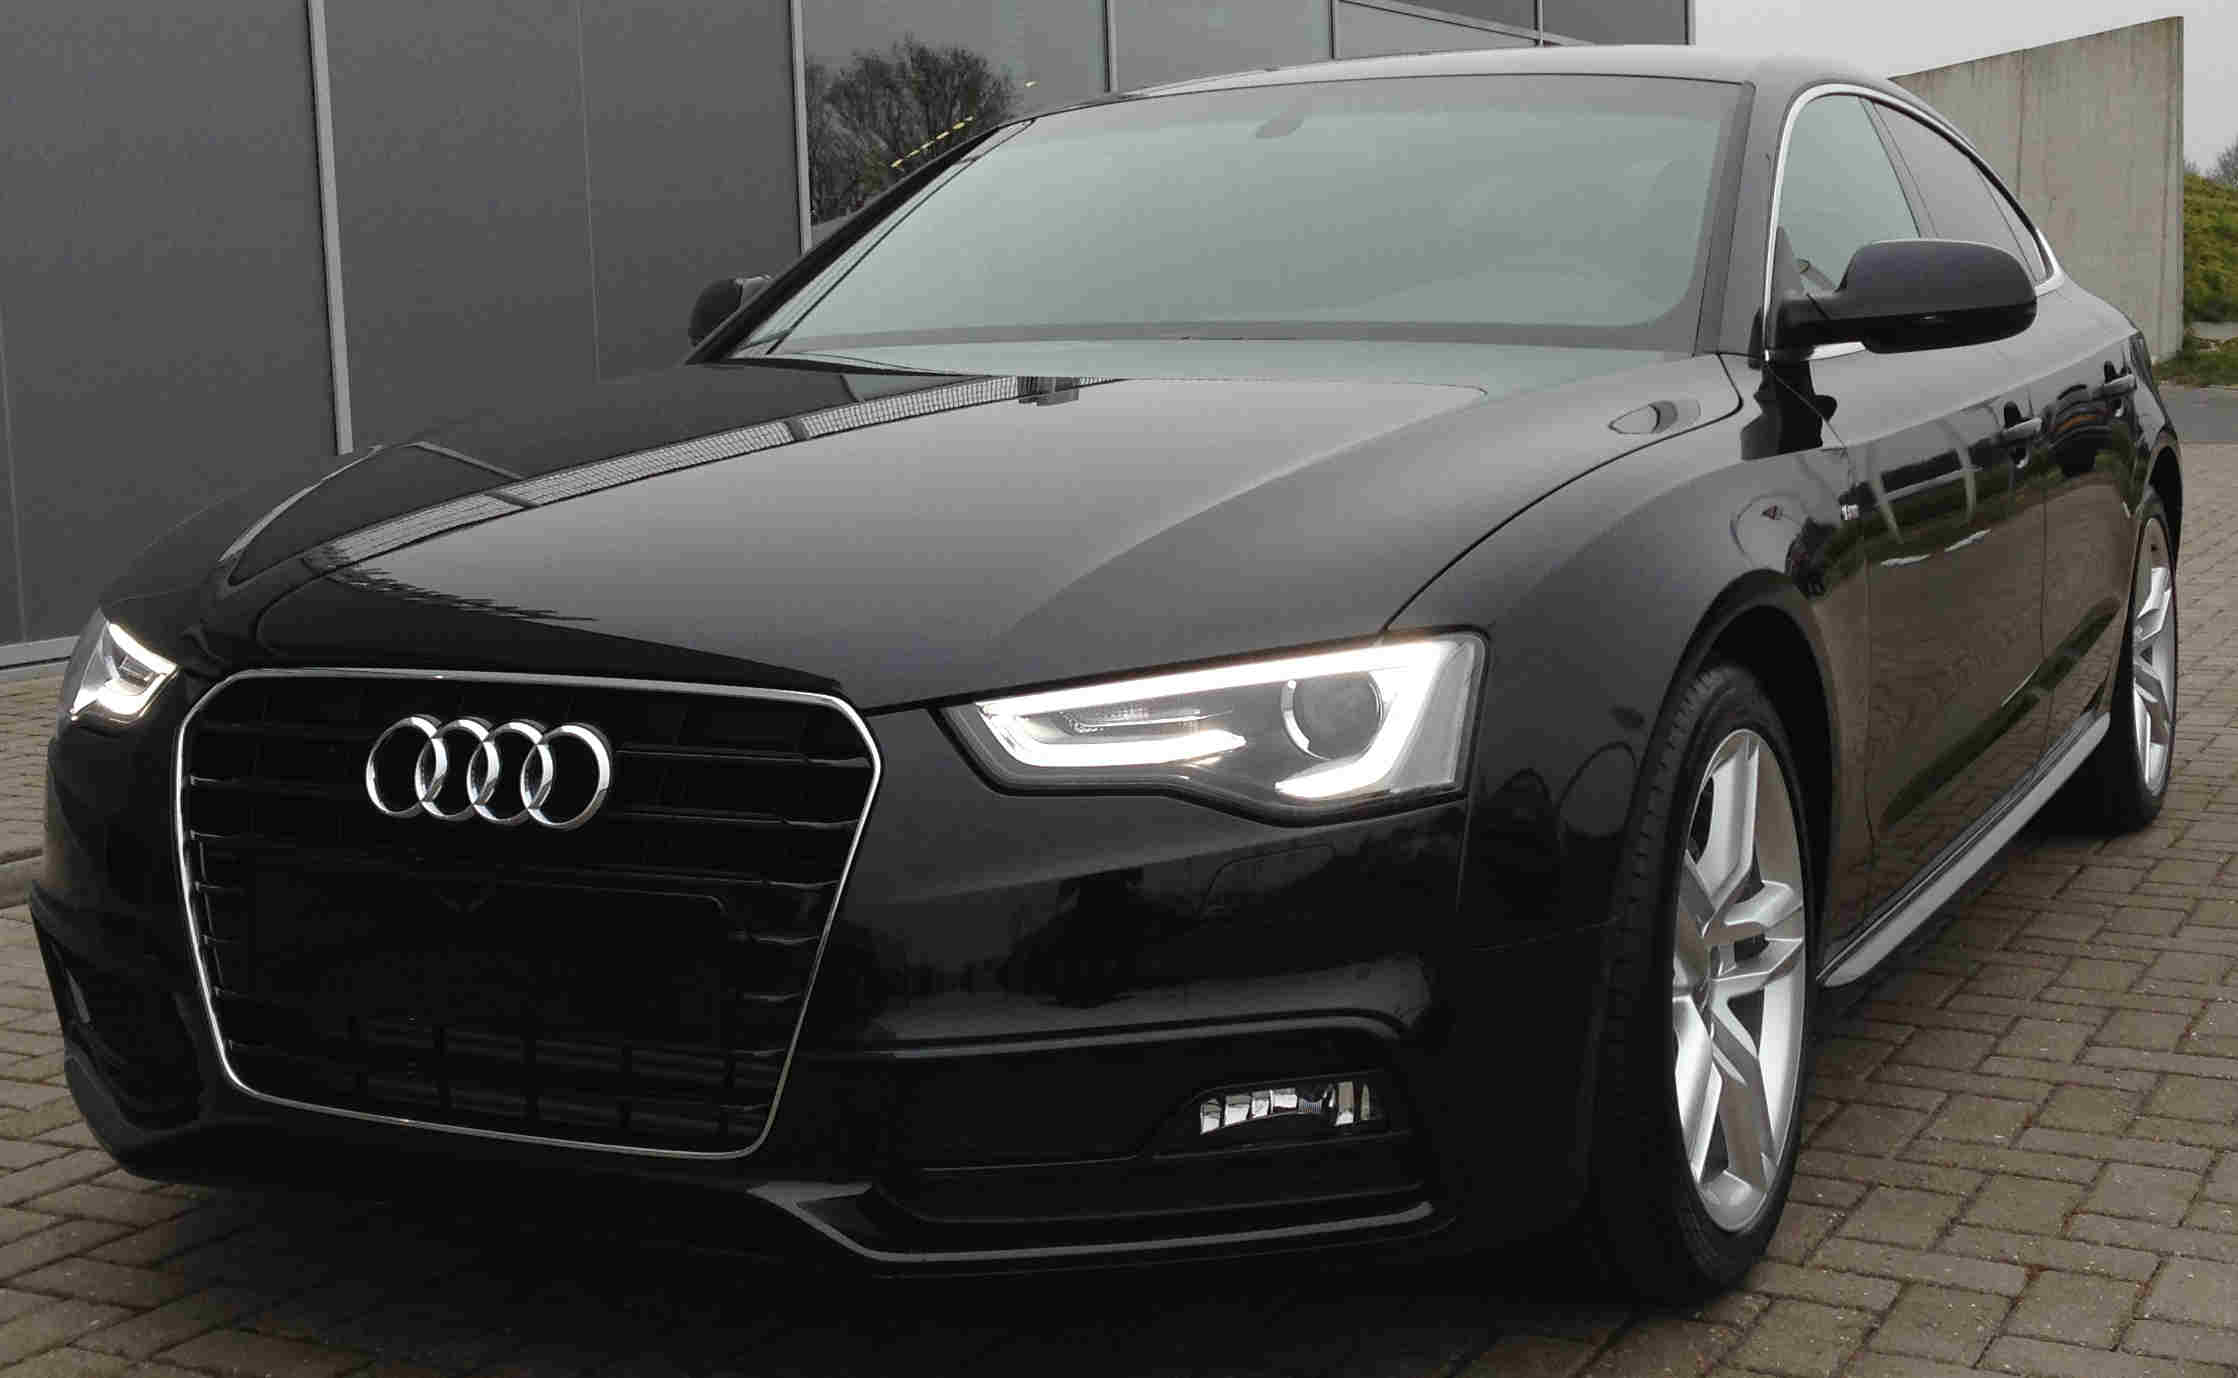 audi a5 sportback s line quattro s tronic modelljahr 2015 2 0 tdi 190 ps export direktimport. Black Bedroom Furniture Sets. Home Design Ideas